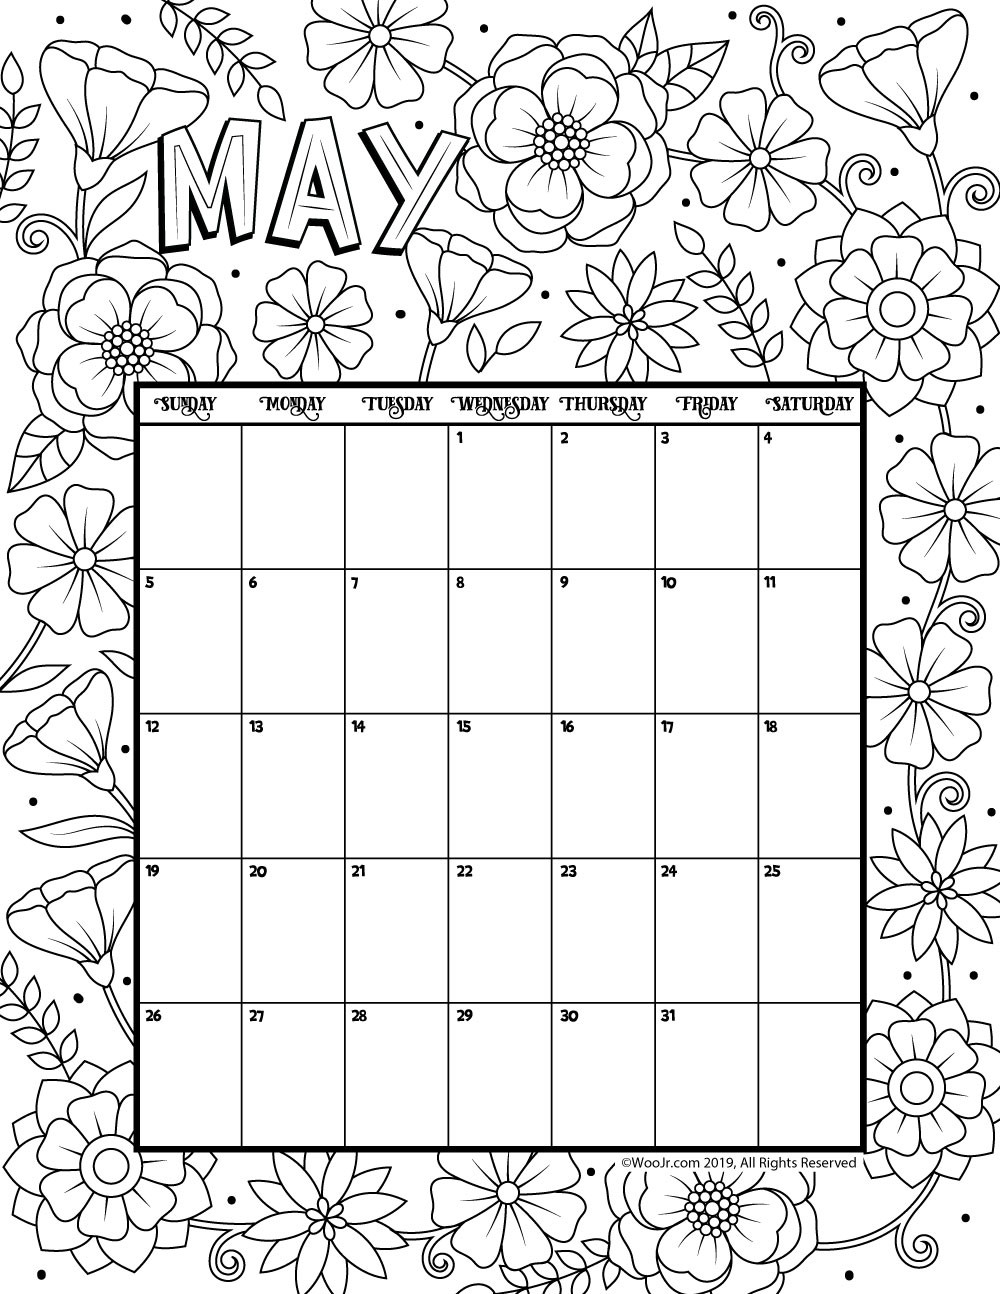 2019 Coloring Pages For Kids  May 2019 Coloring Calendar